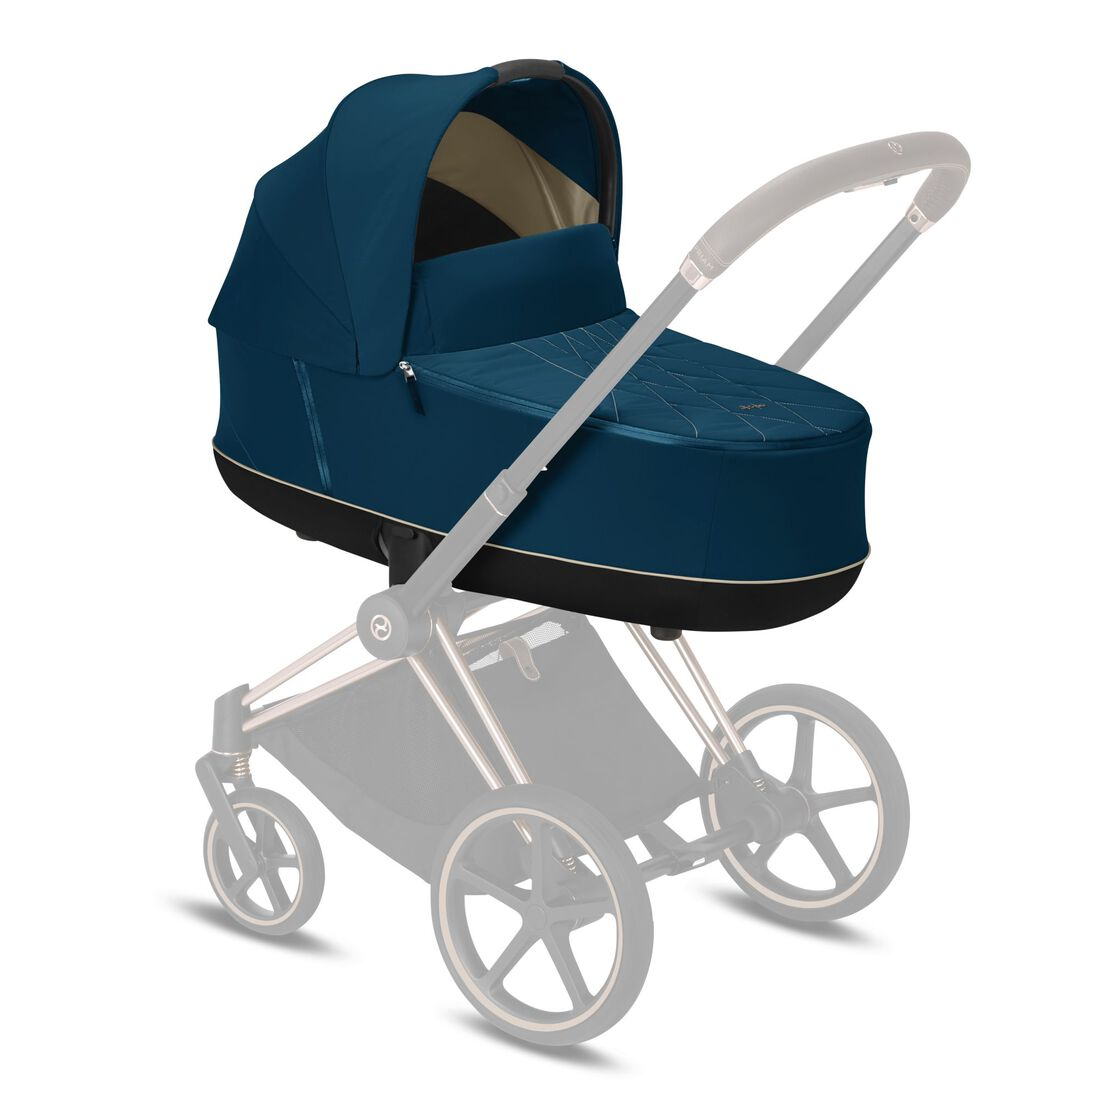 CYBEX Priam Lux Carry Cot - Mountain Blue in Mountain Blue large Bild 5